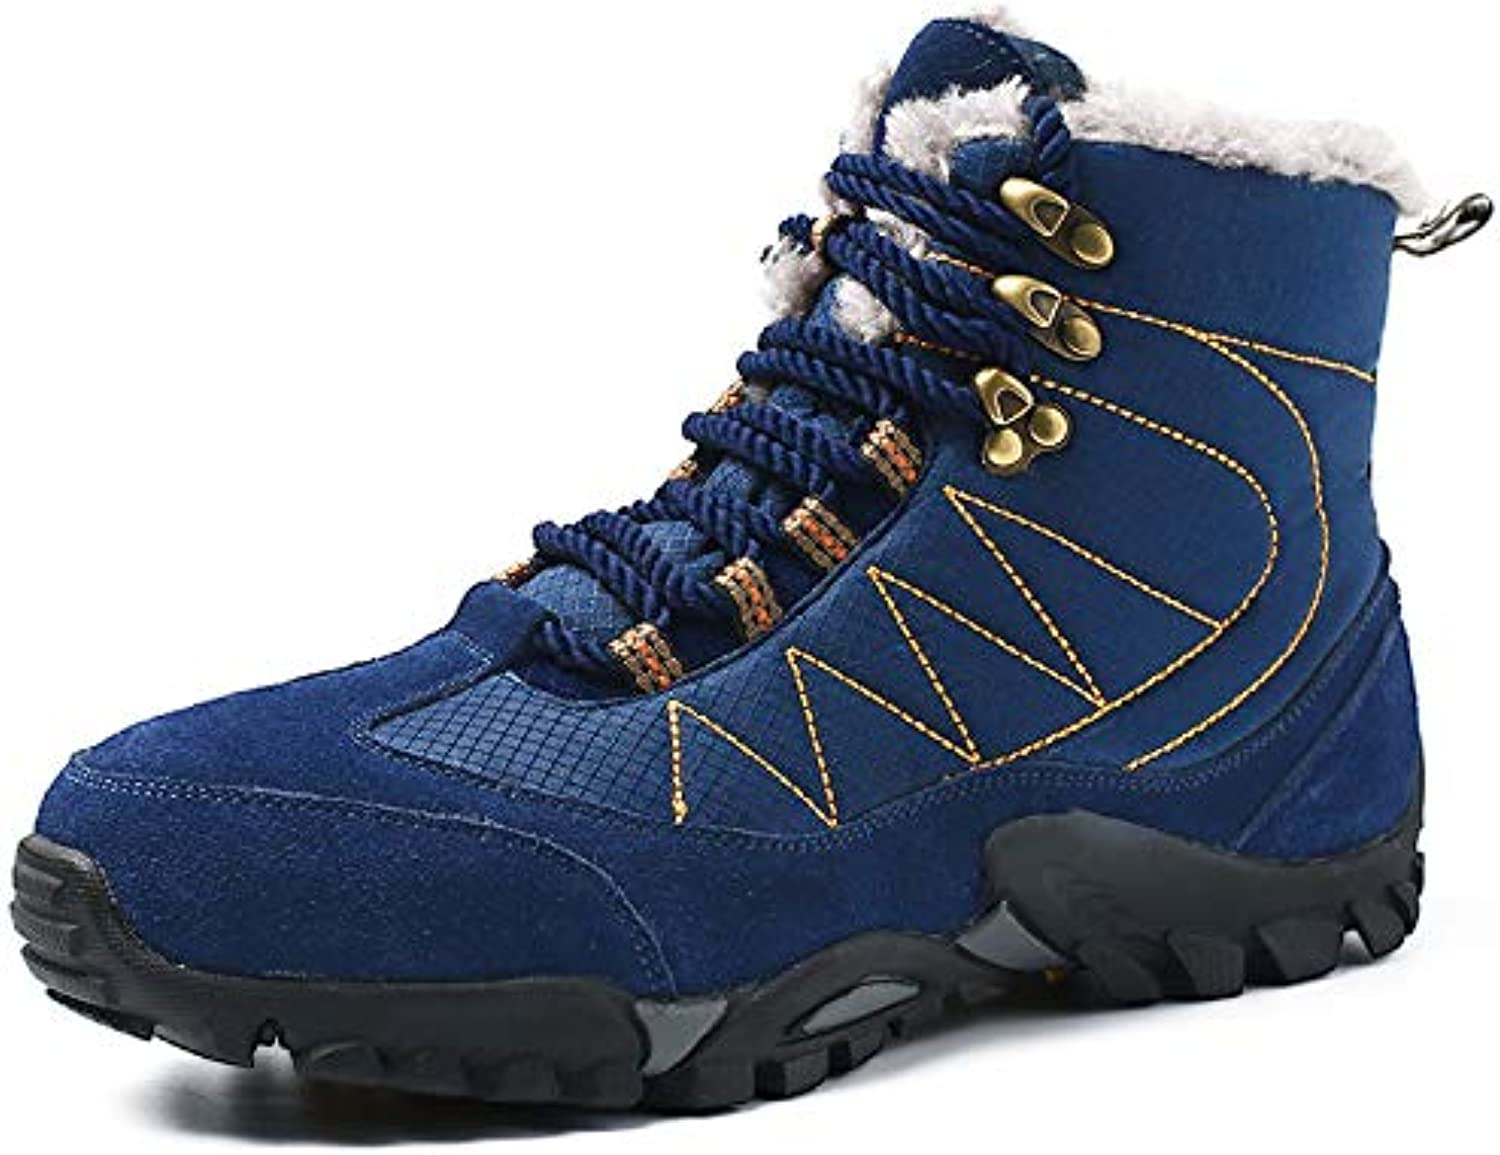 Winter Boots Warm Thick Snow Boots Men's Boots Ankle Boots Outdoor Waterproof Boots